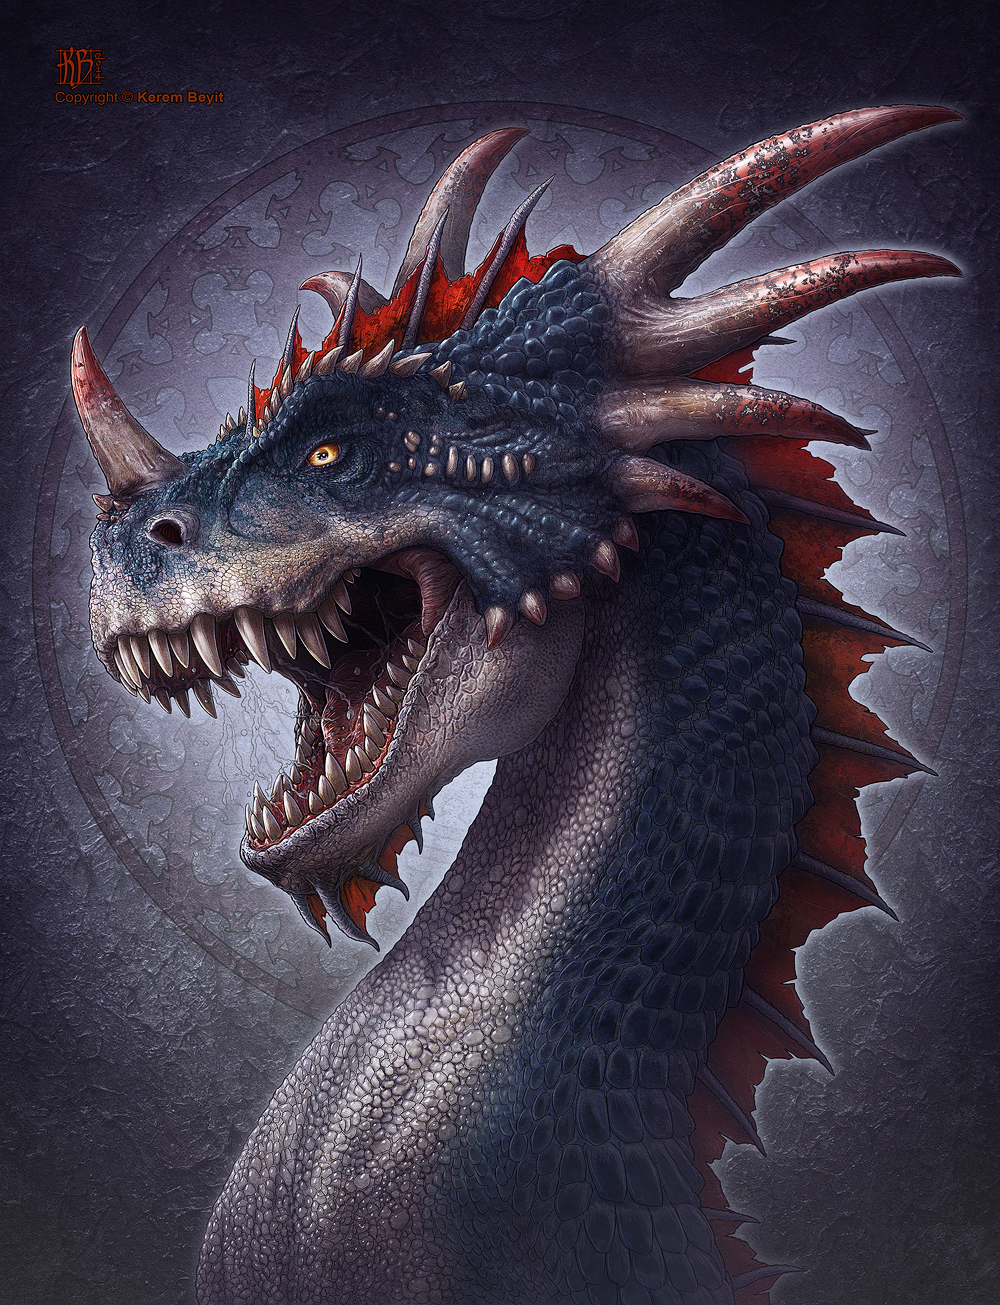 Bloodhorn Dragon by kerembeyit